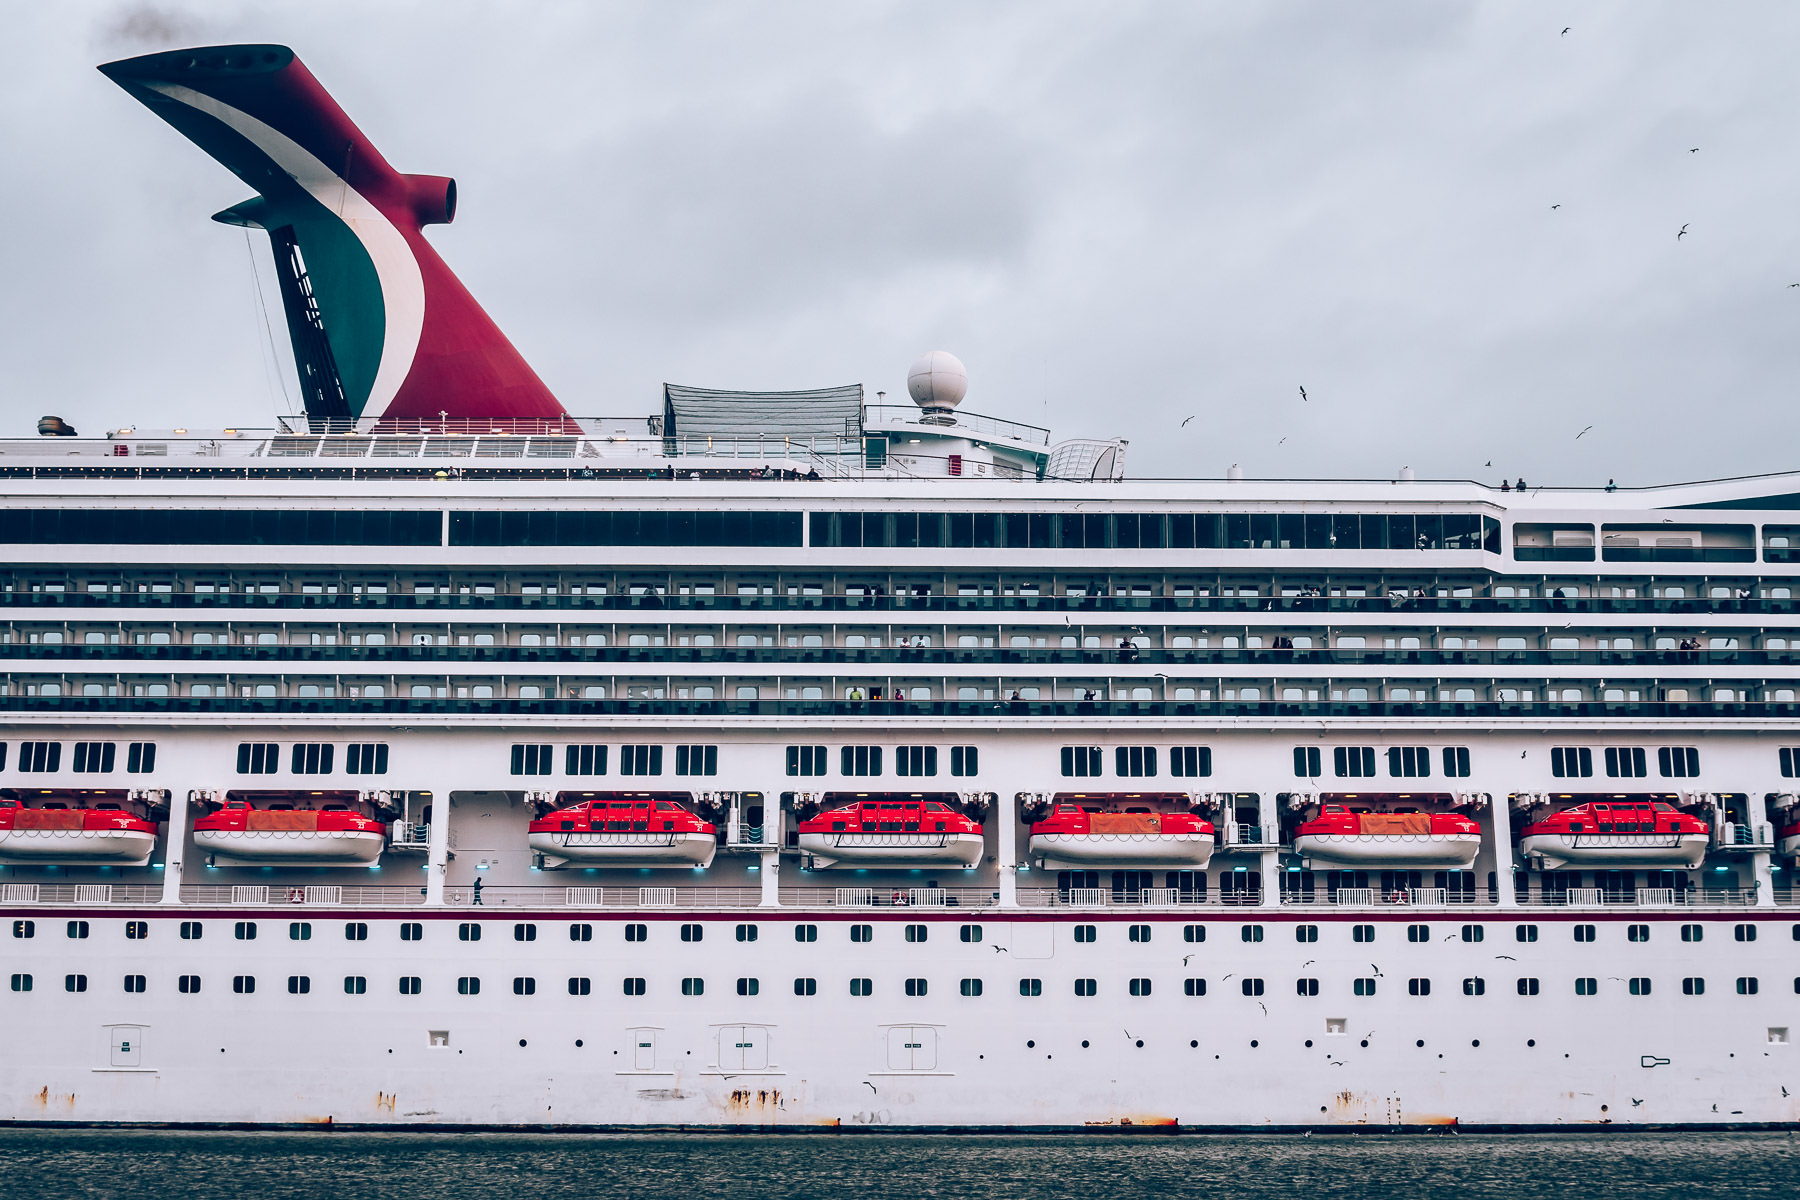 The side of the cruise shipCarnival Freedom as it departs Galveston, Texas.